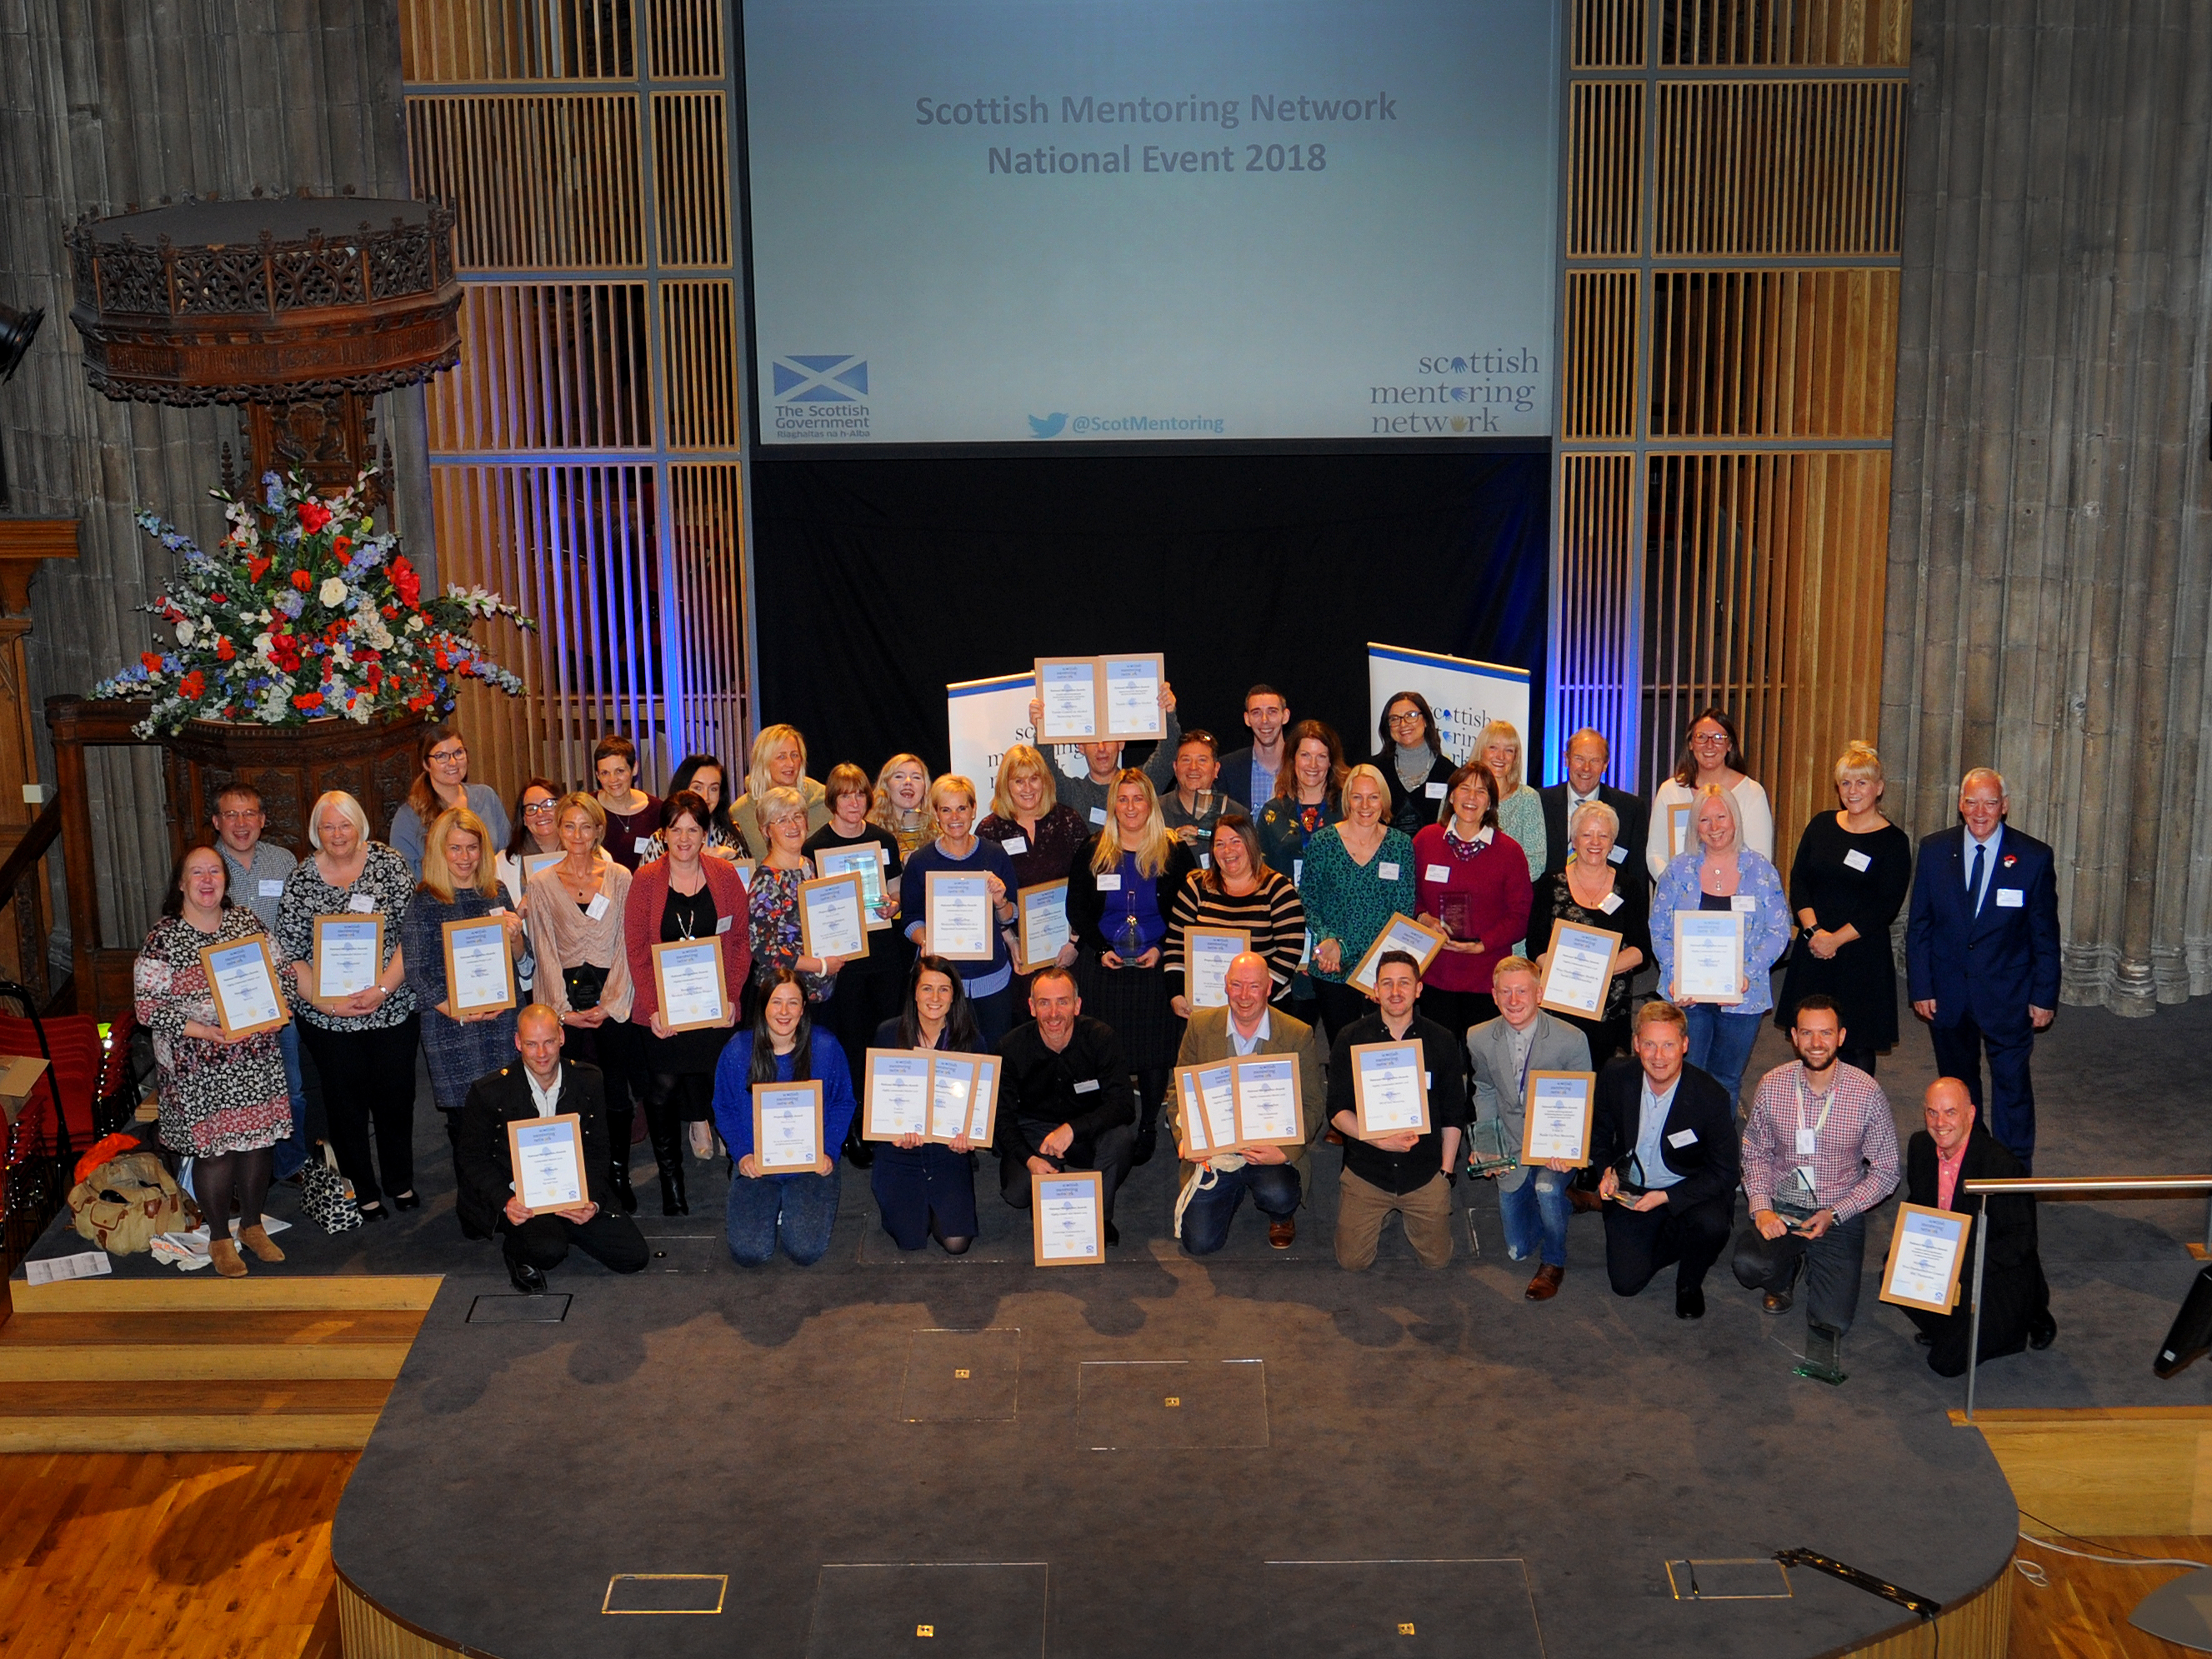 SMN National Event and Recognition Awards 2018 Winners & Round Up Now Available